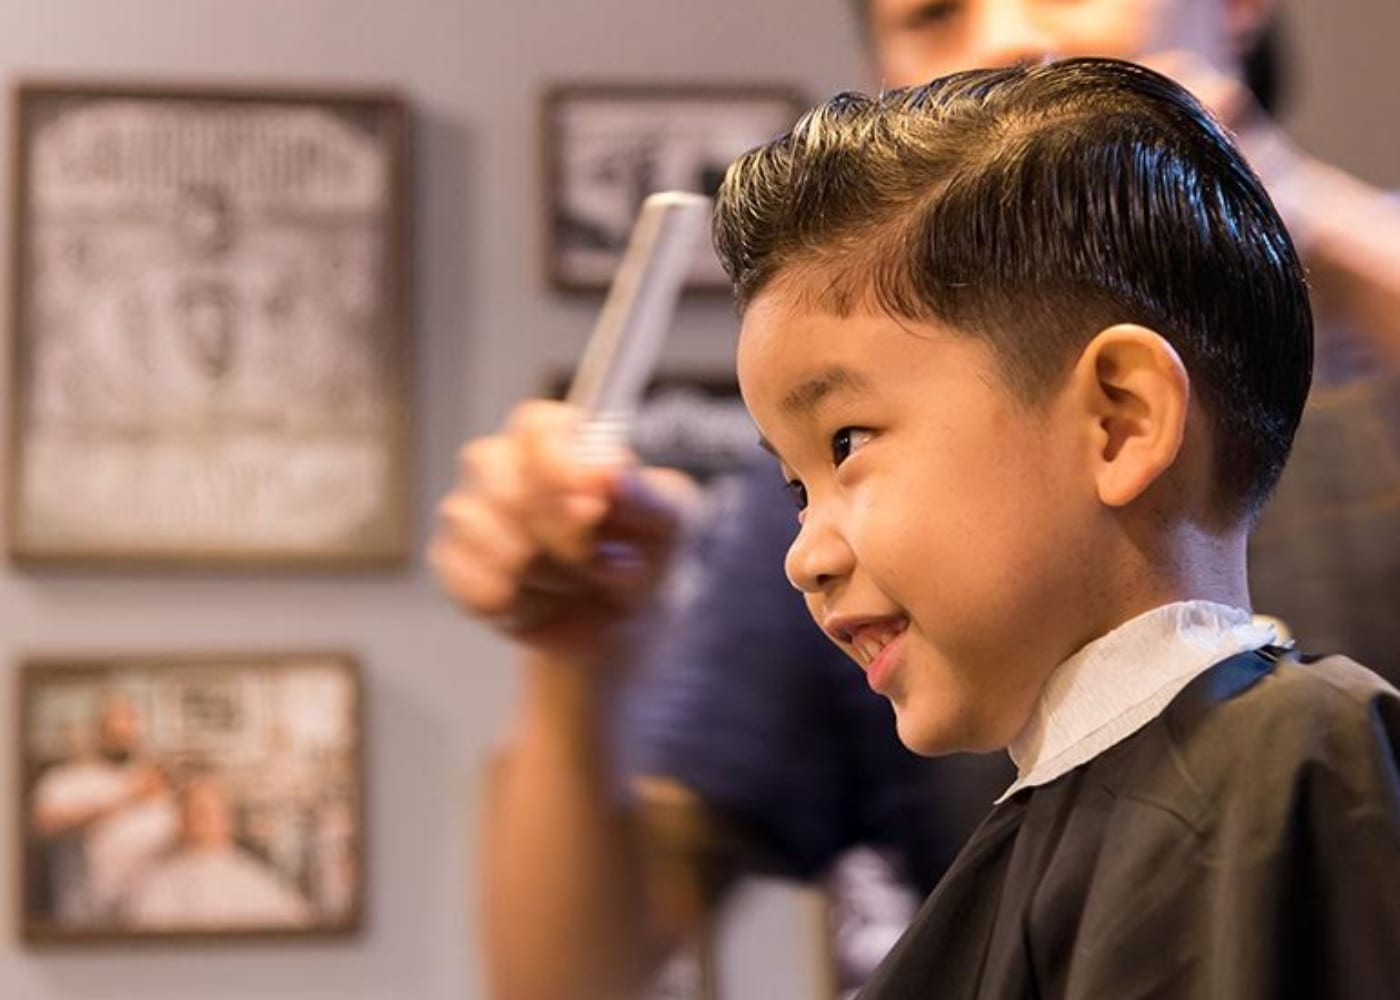 Where to bring your child for a haircut in Singapore: best kids' hairdressers and salons